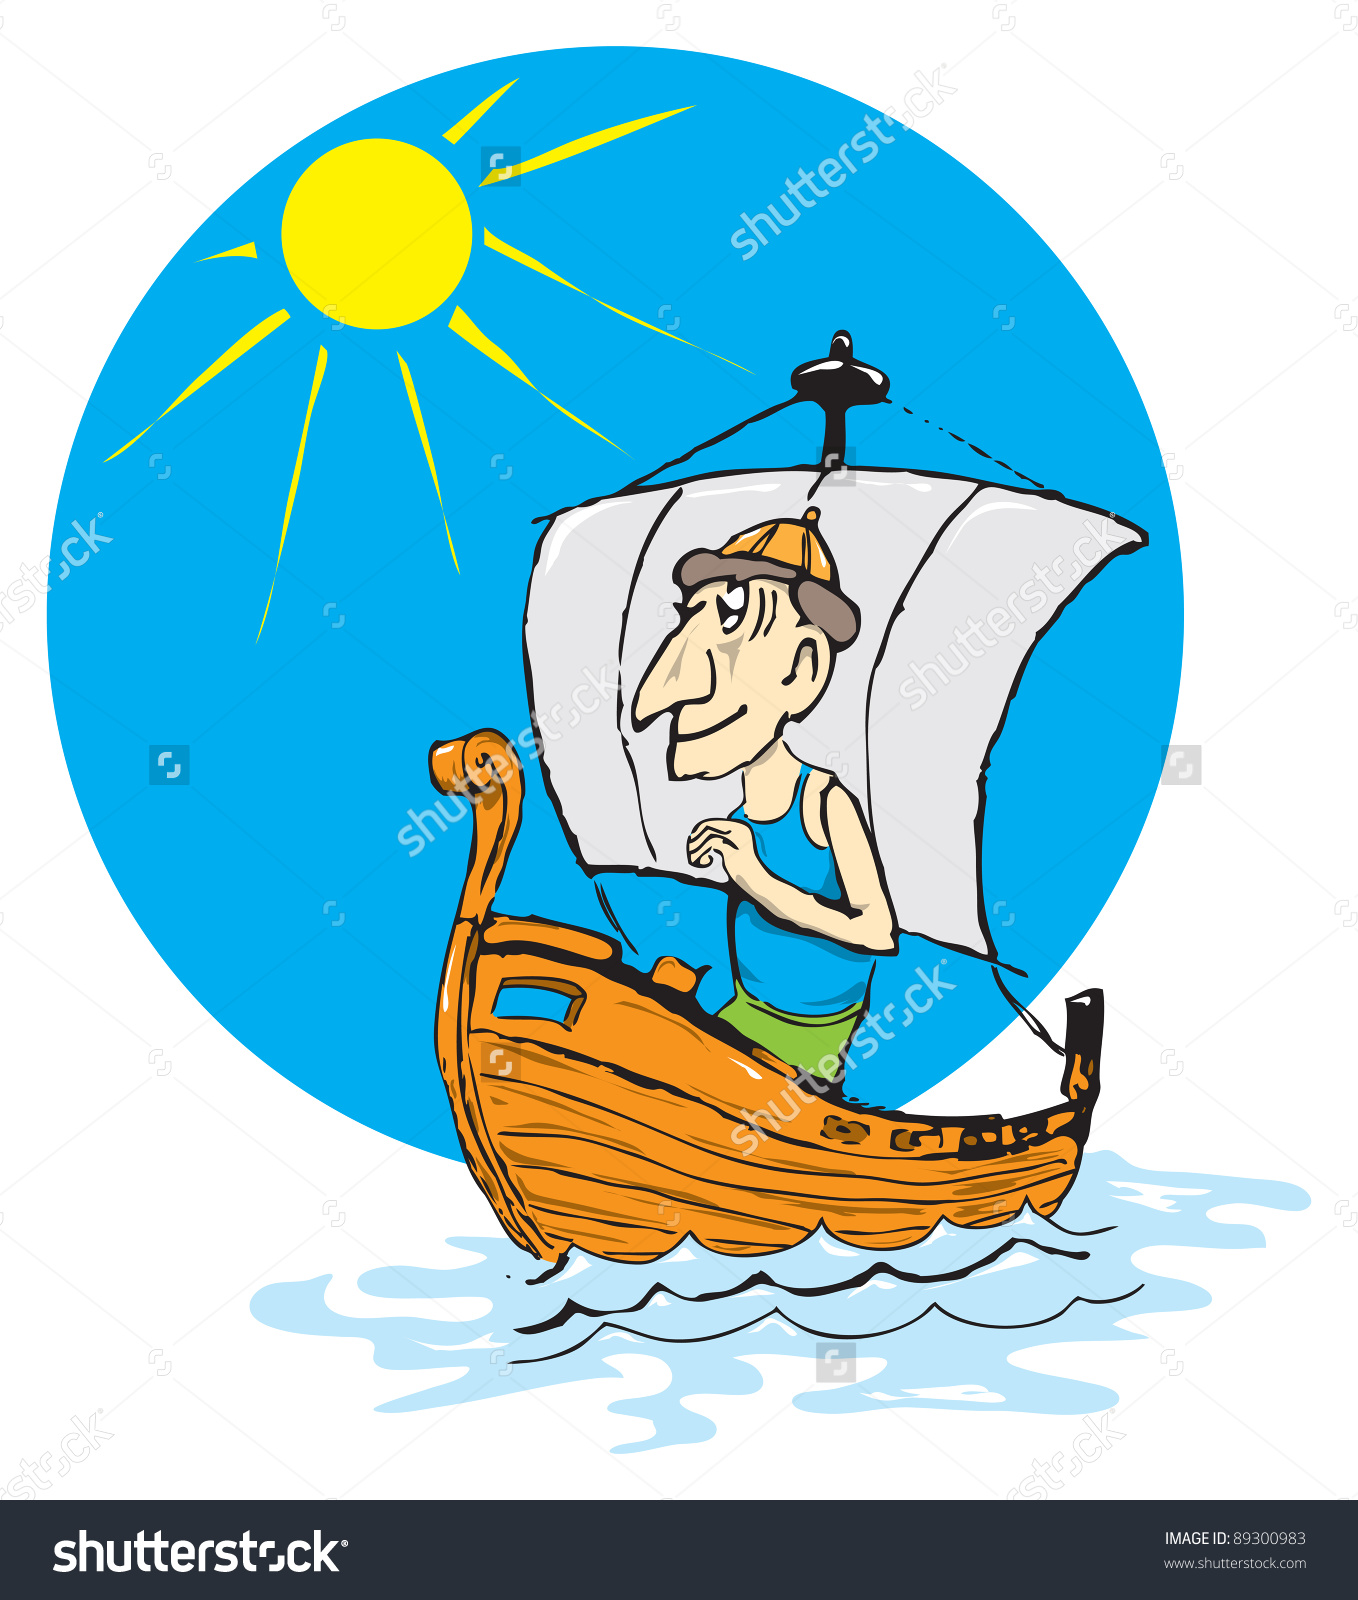 Playful Vector Drawing On Tourism Seafaring Stock Vector 89300983.